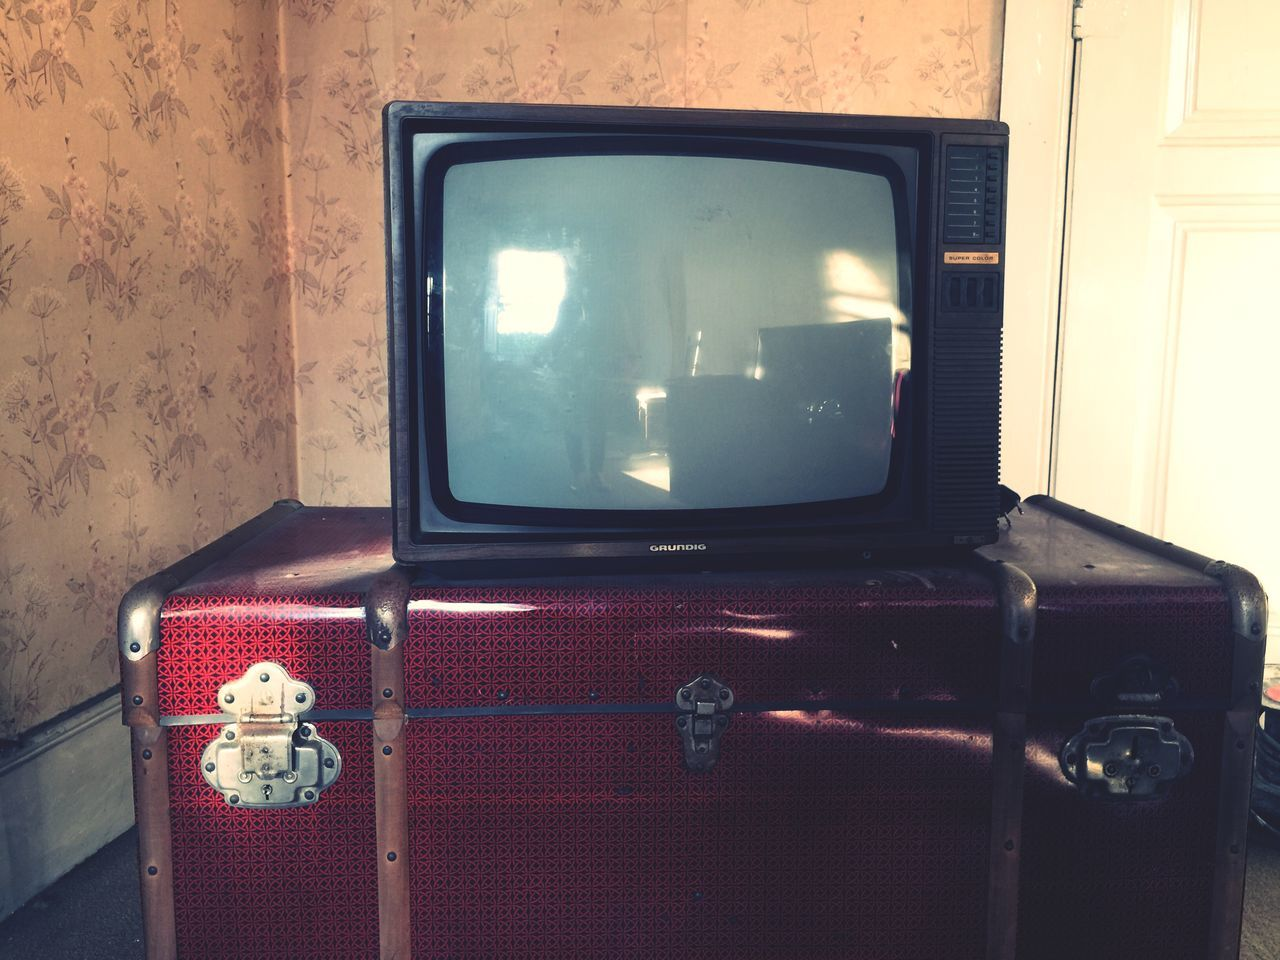 Beautiful stock photos of television, Auto Post Production Filter, Front View, Indoors, No People